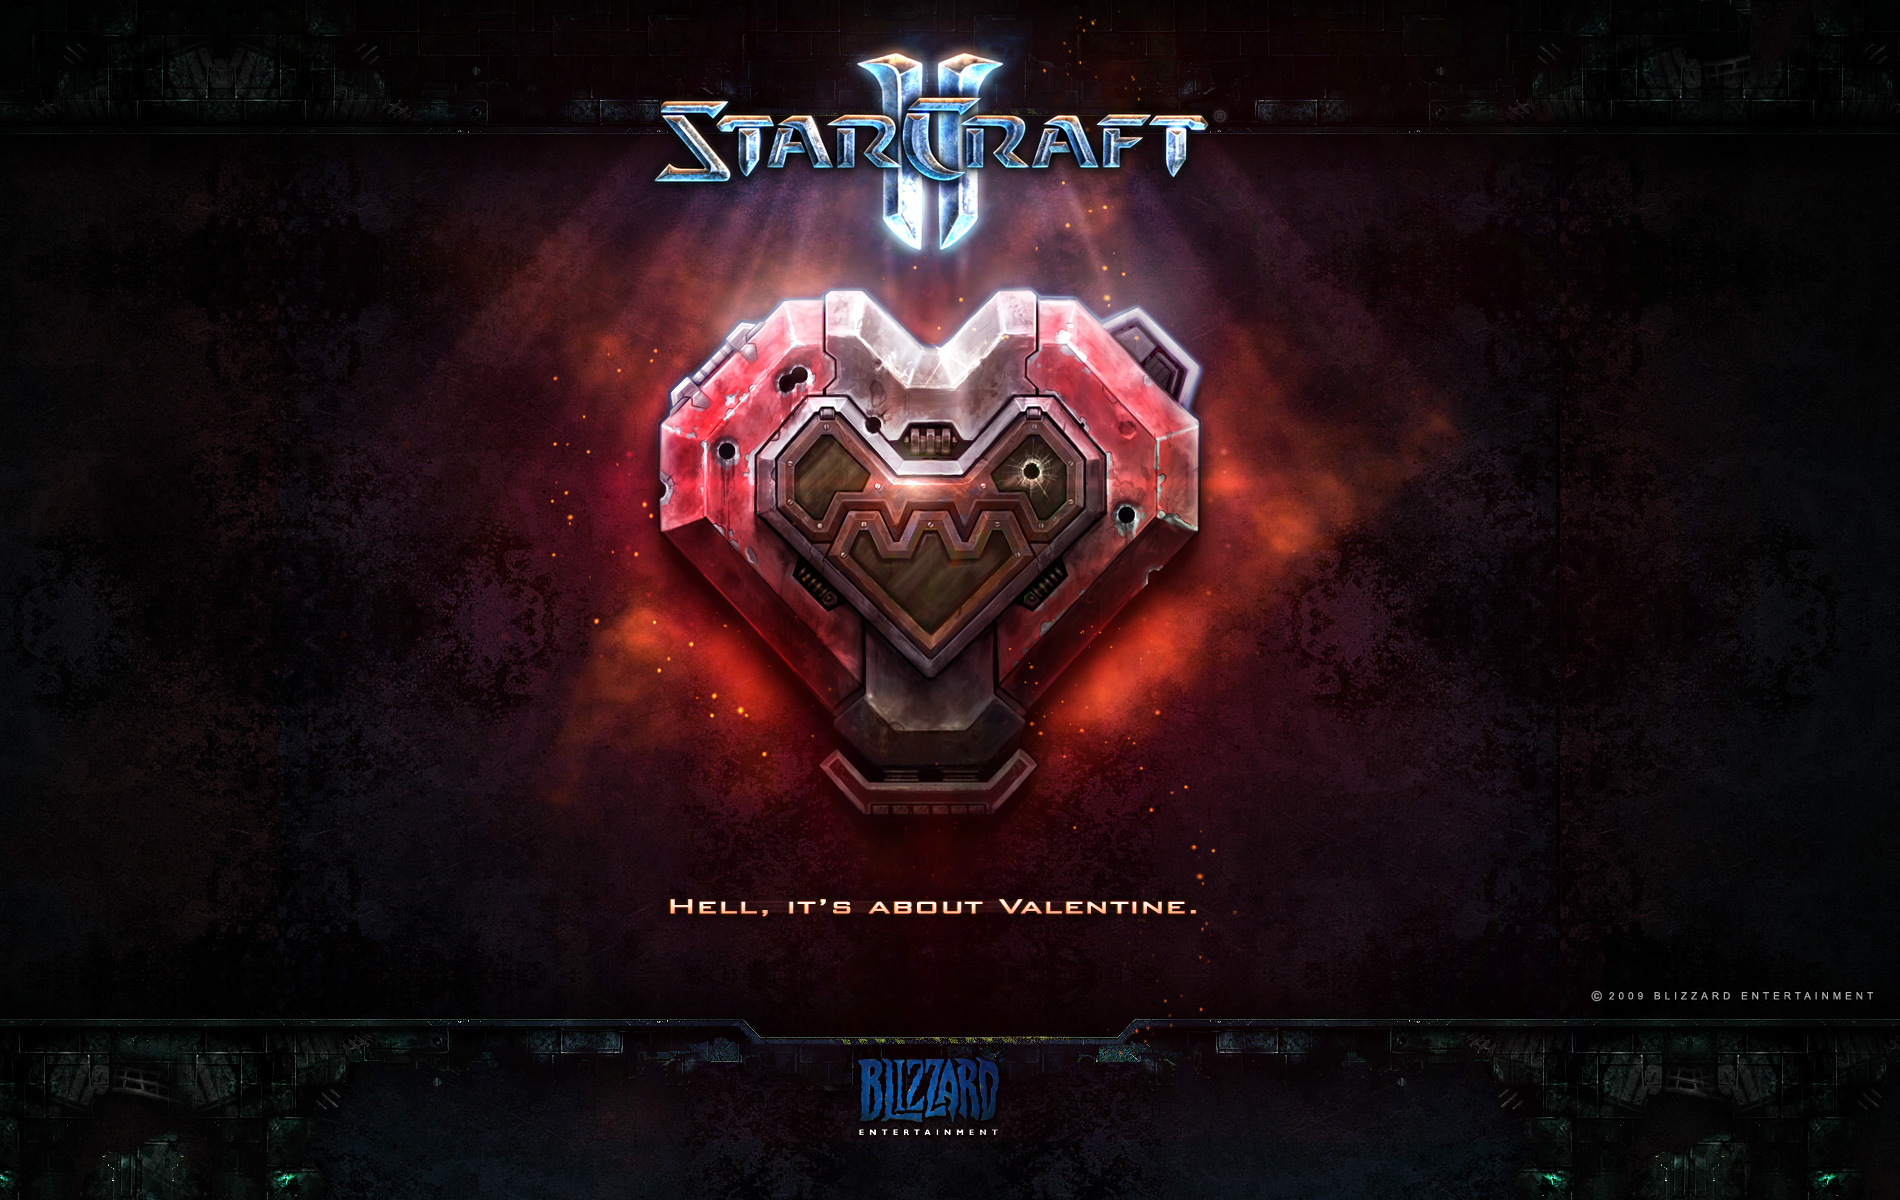 Wallpaper Jeux video StarCraft 2 Saint-Valentin terran